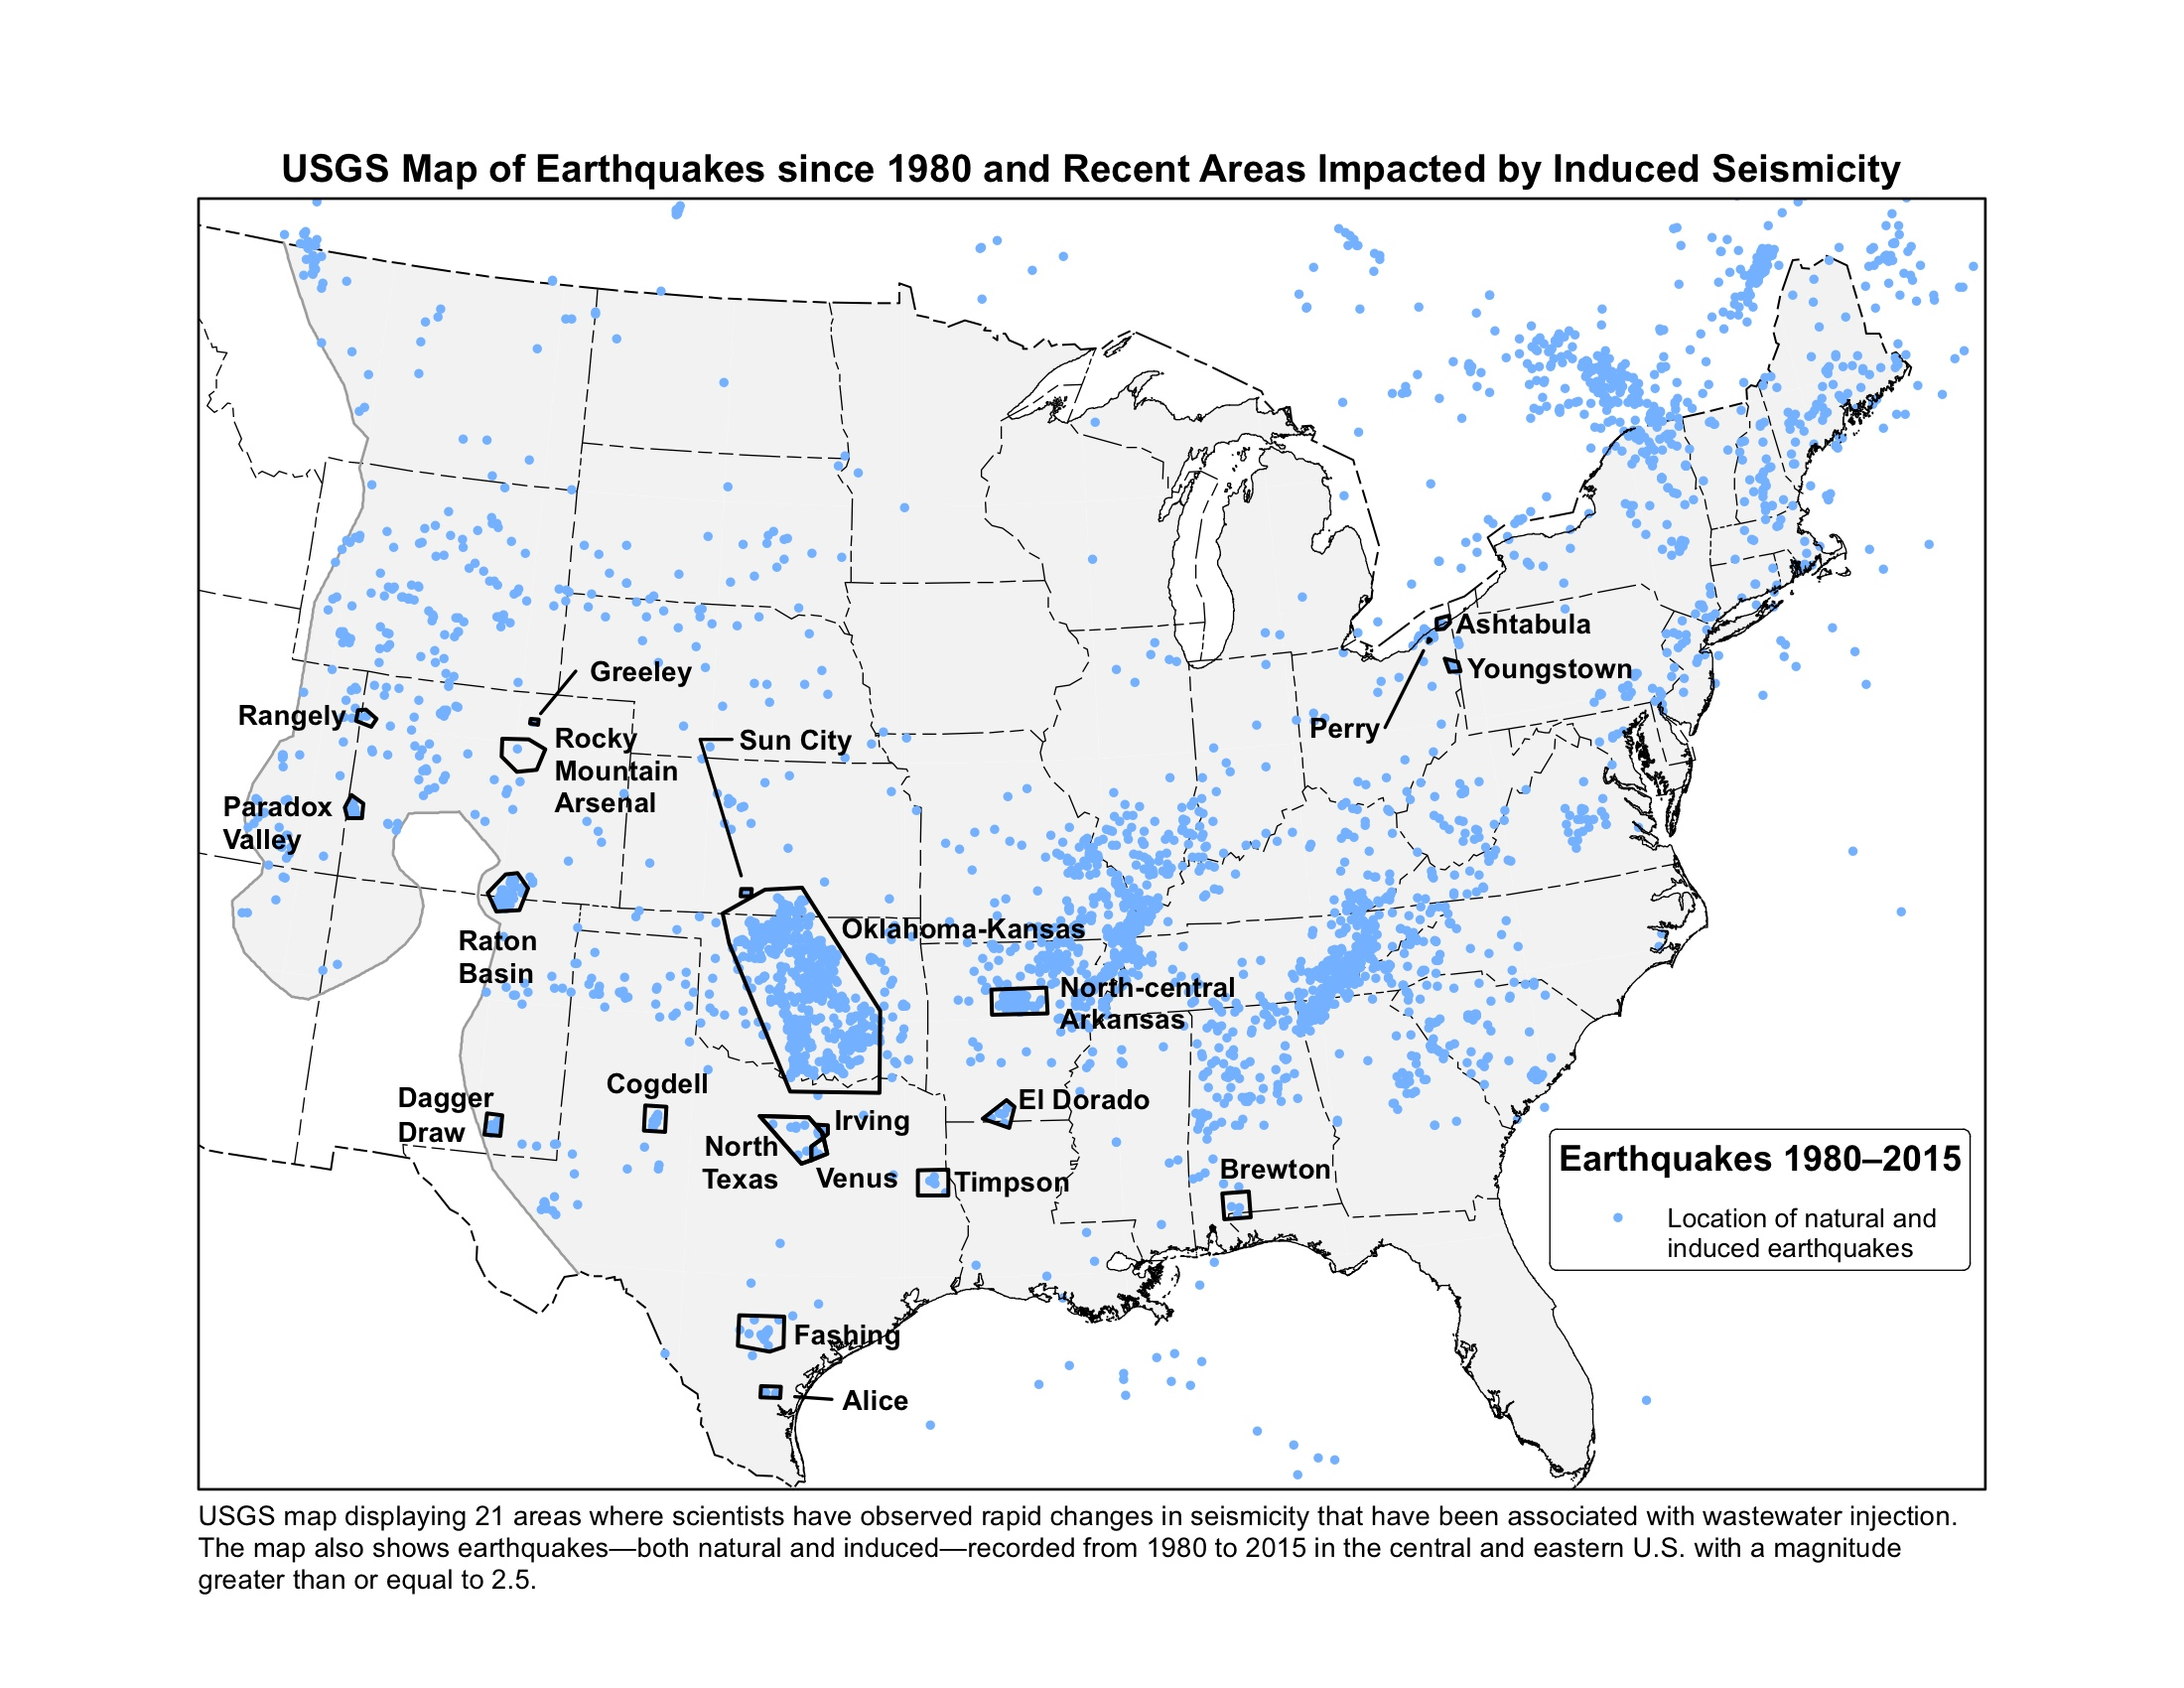 7 million Americans are now at risk from manmade earthquakes